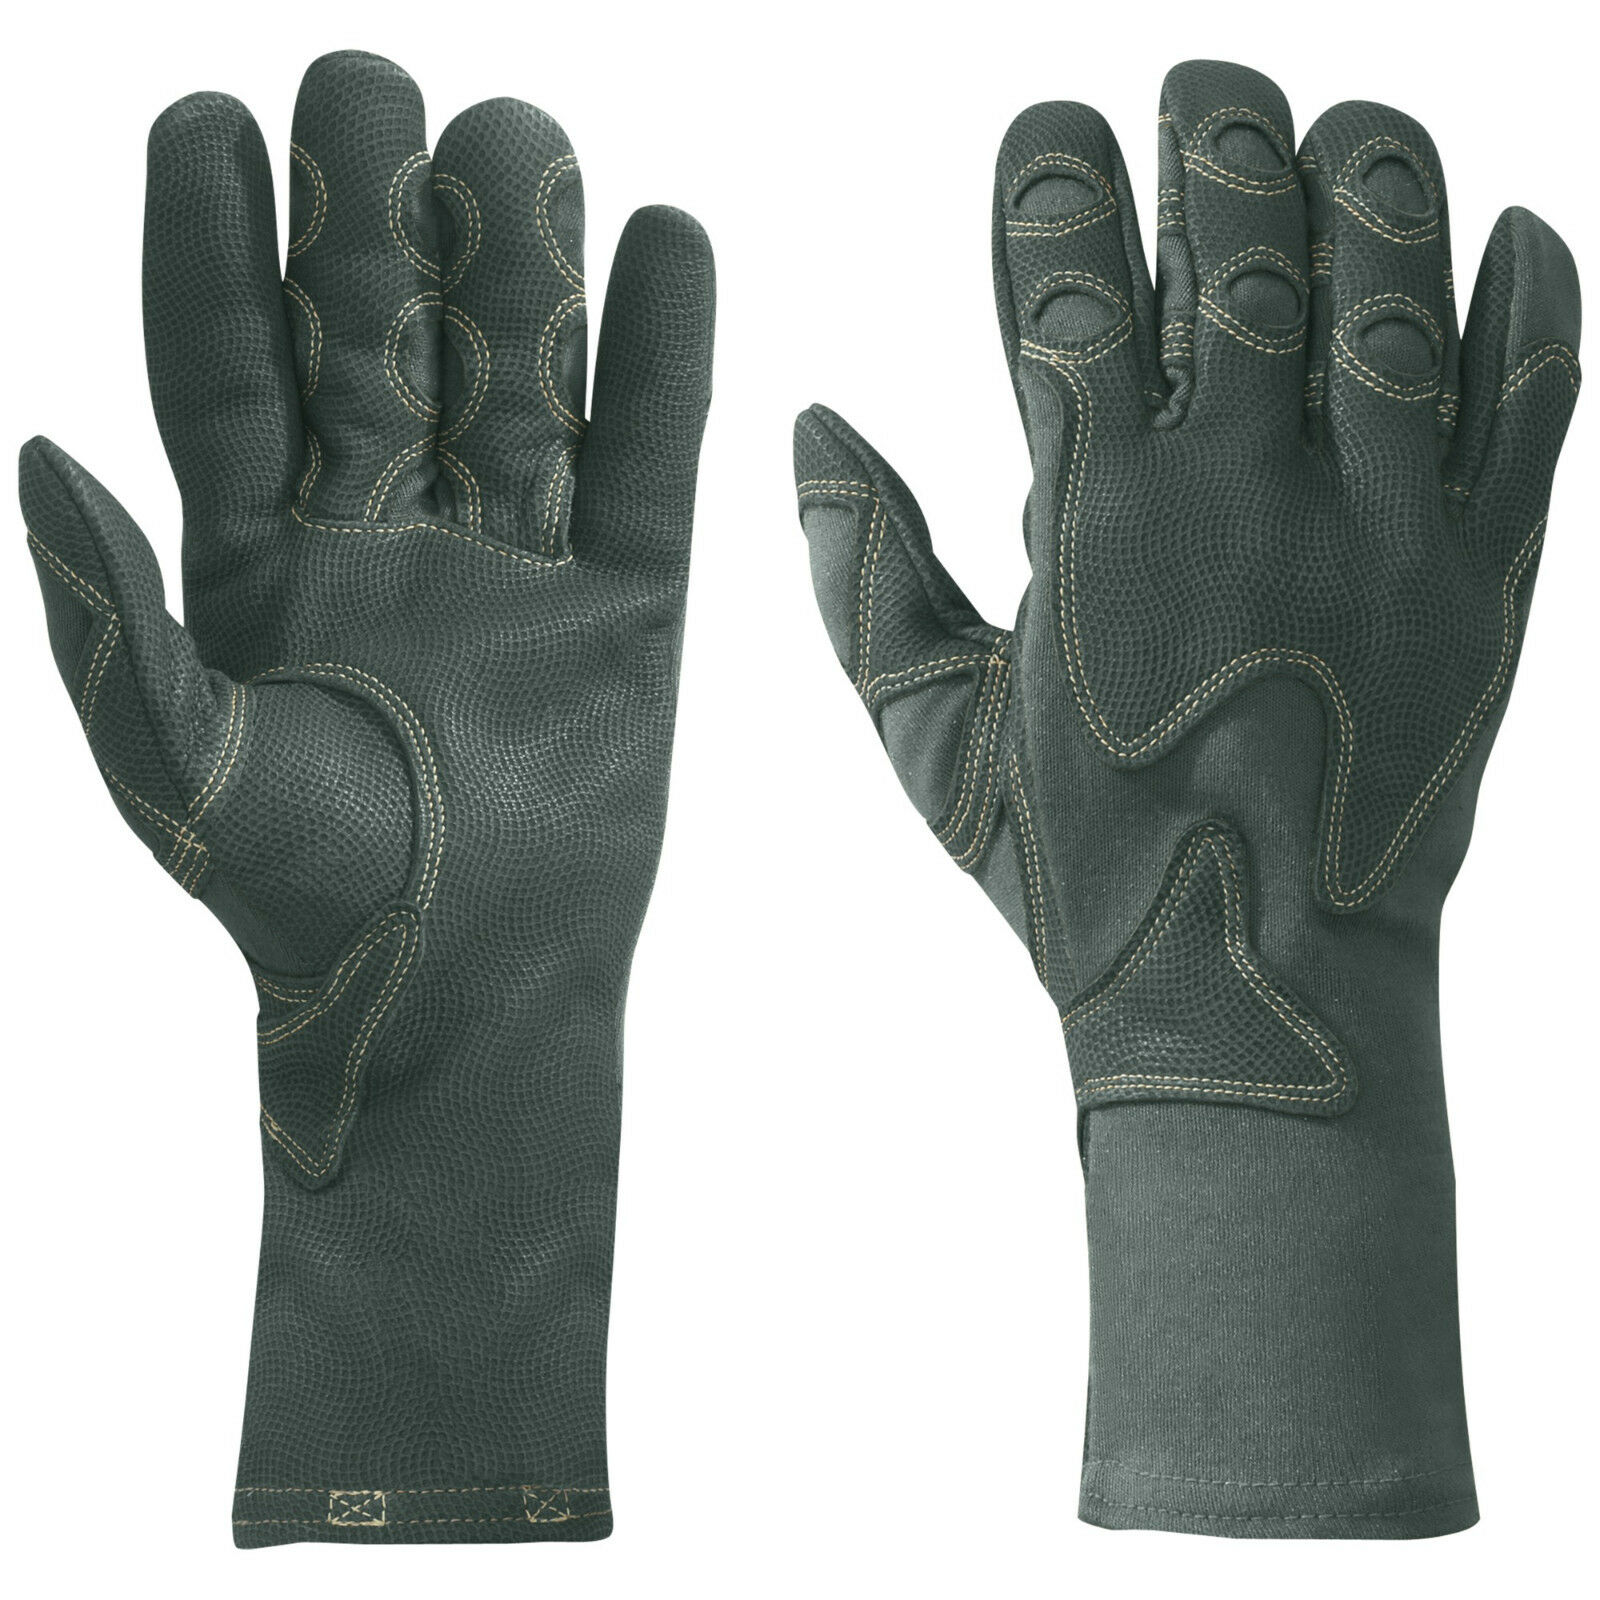 Outdoor Research Overlord Guantes verde Follaje Hecho en USA